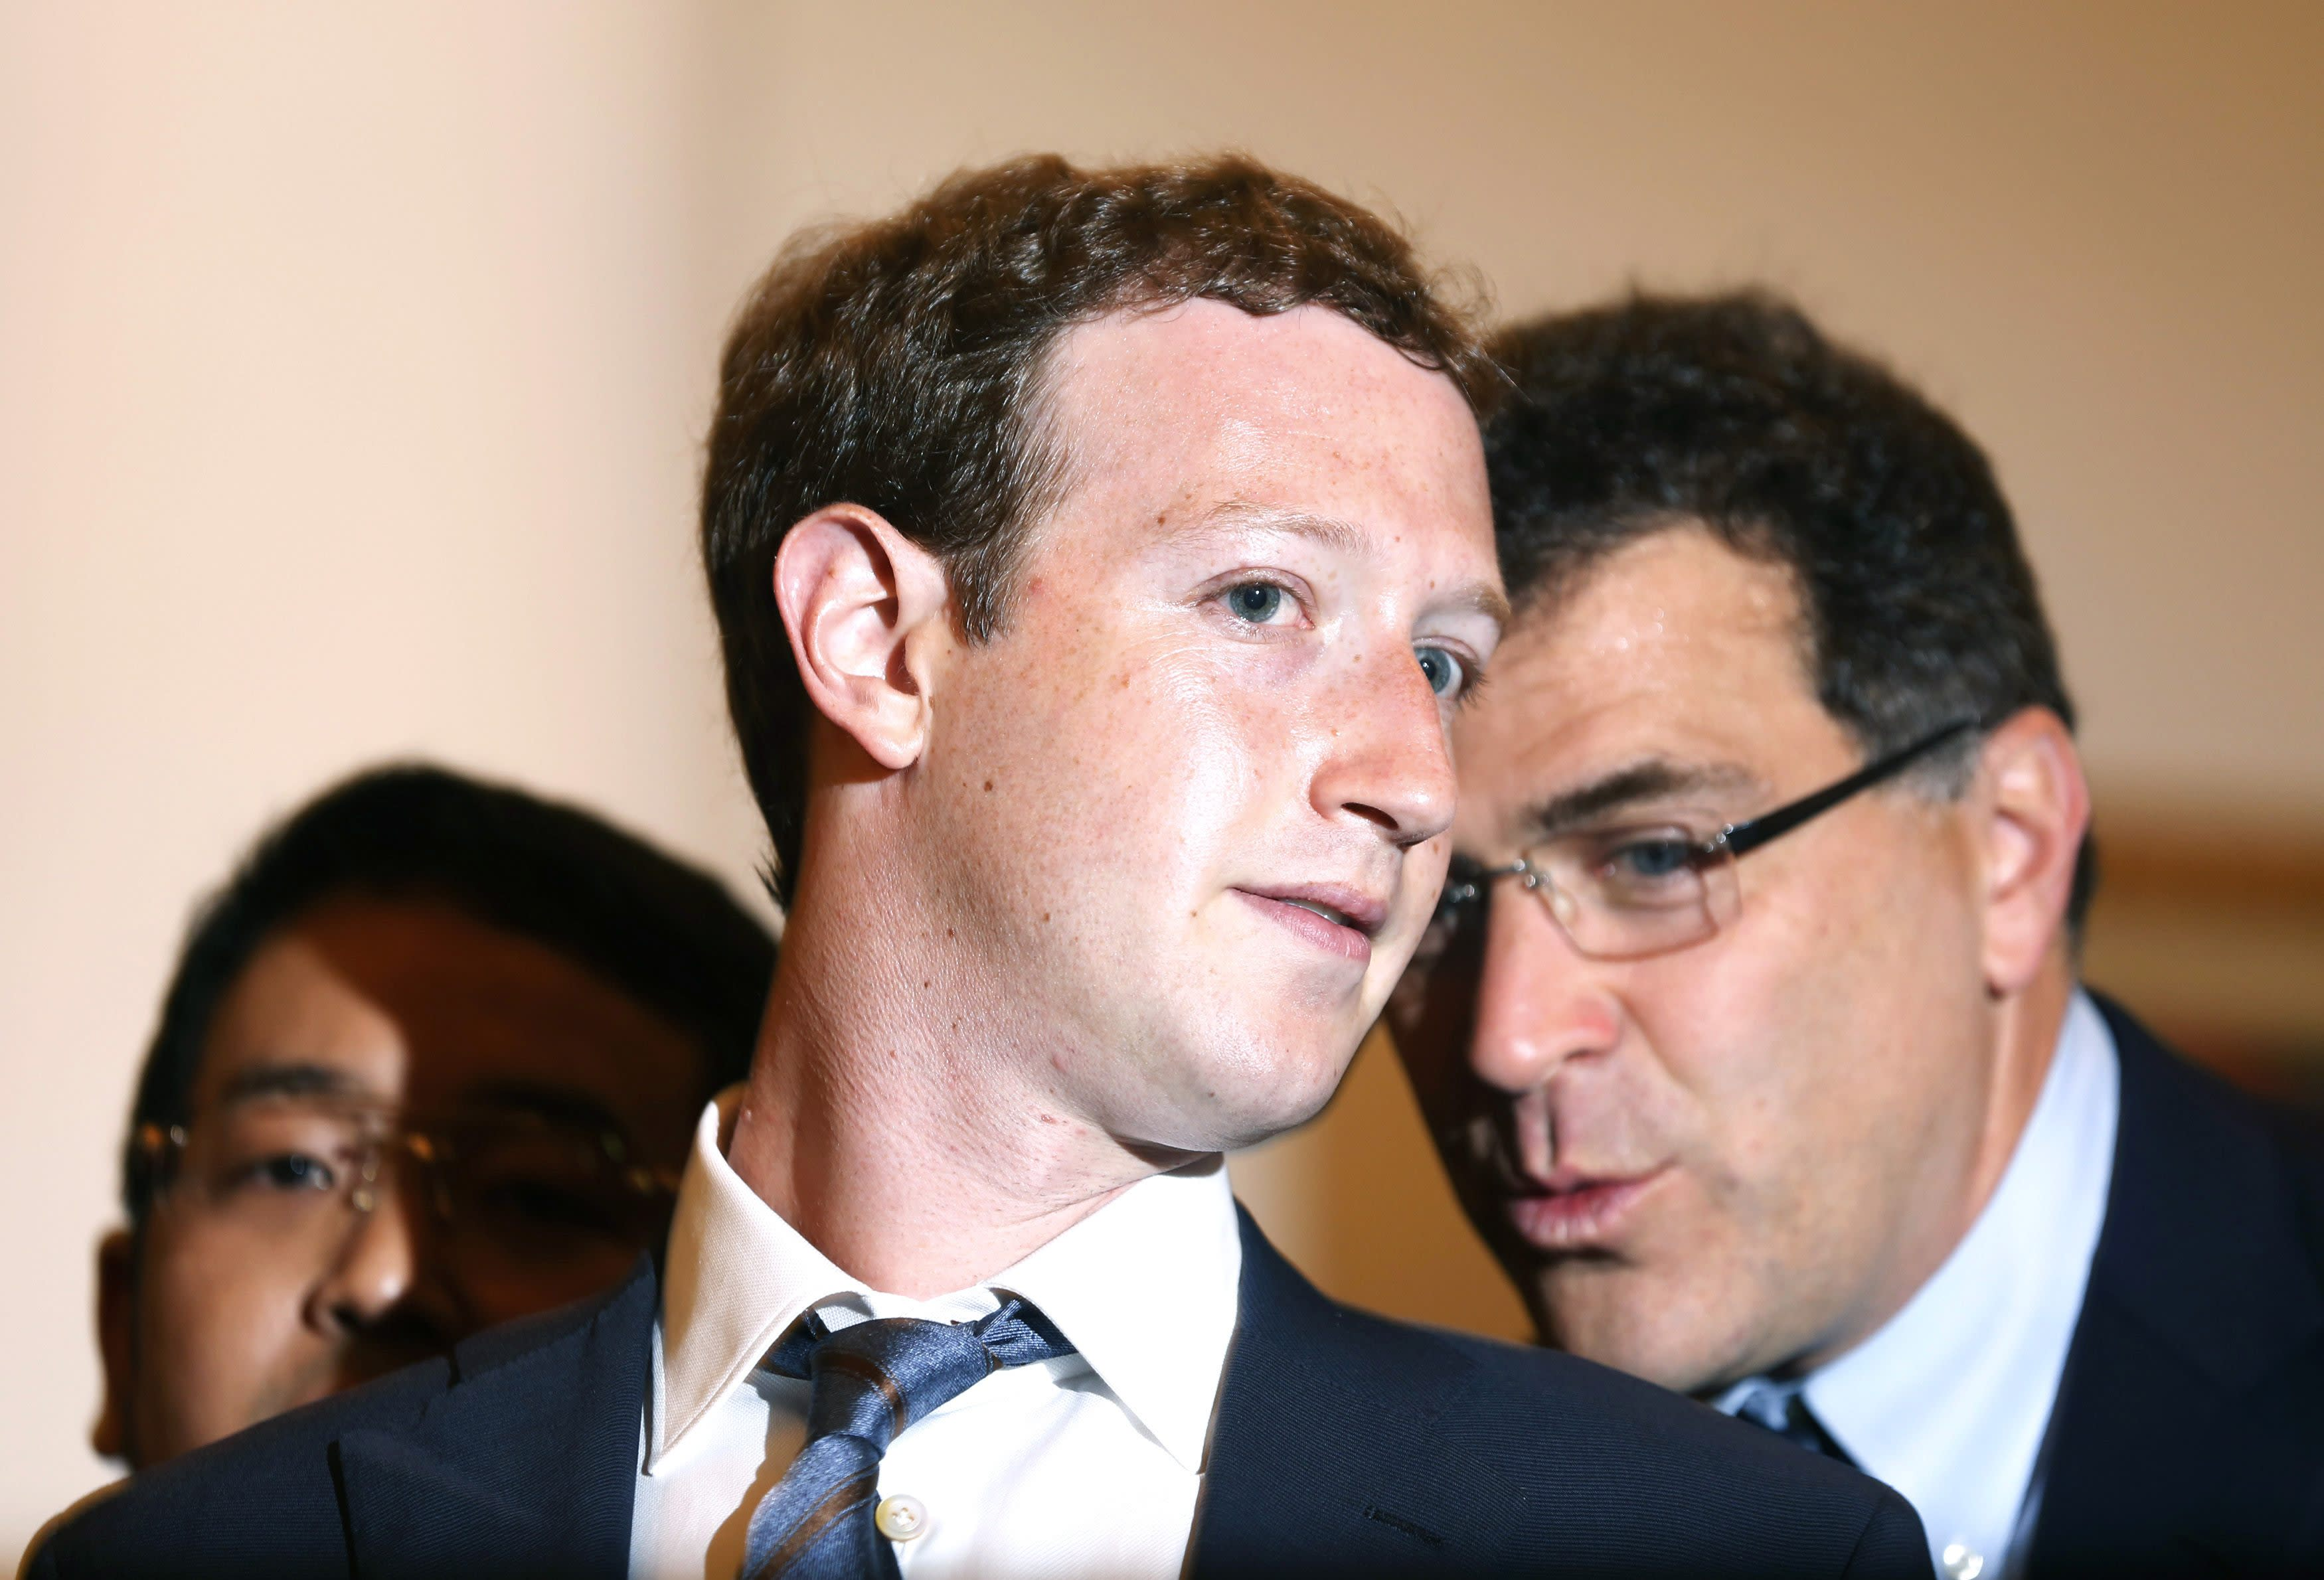 Mark Zuckerberg, founder and CEO of Facebook, talks to his colleagues at Jakarta city hall